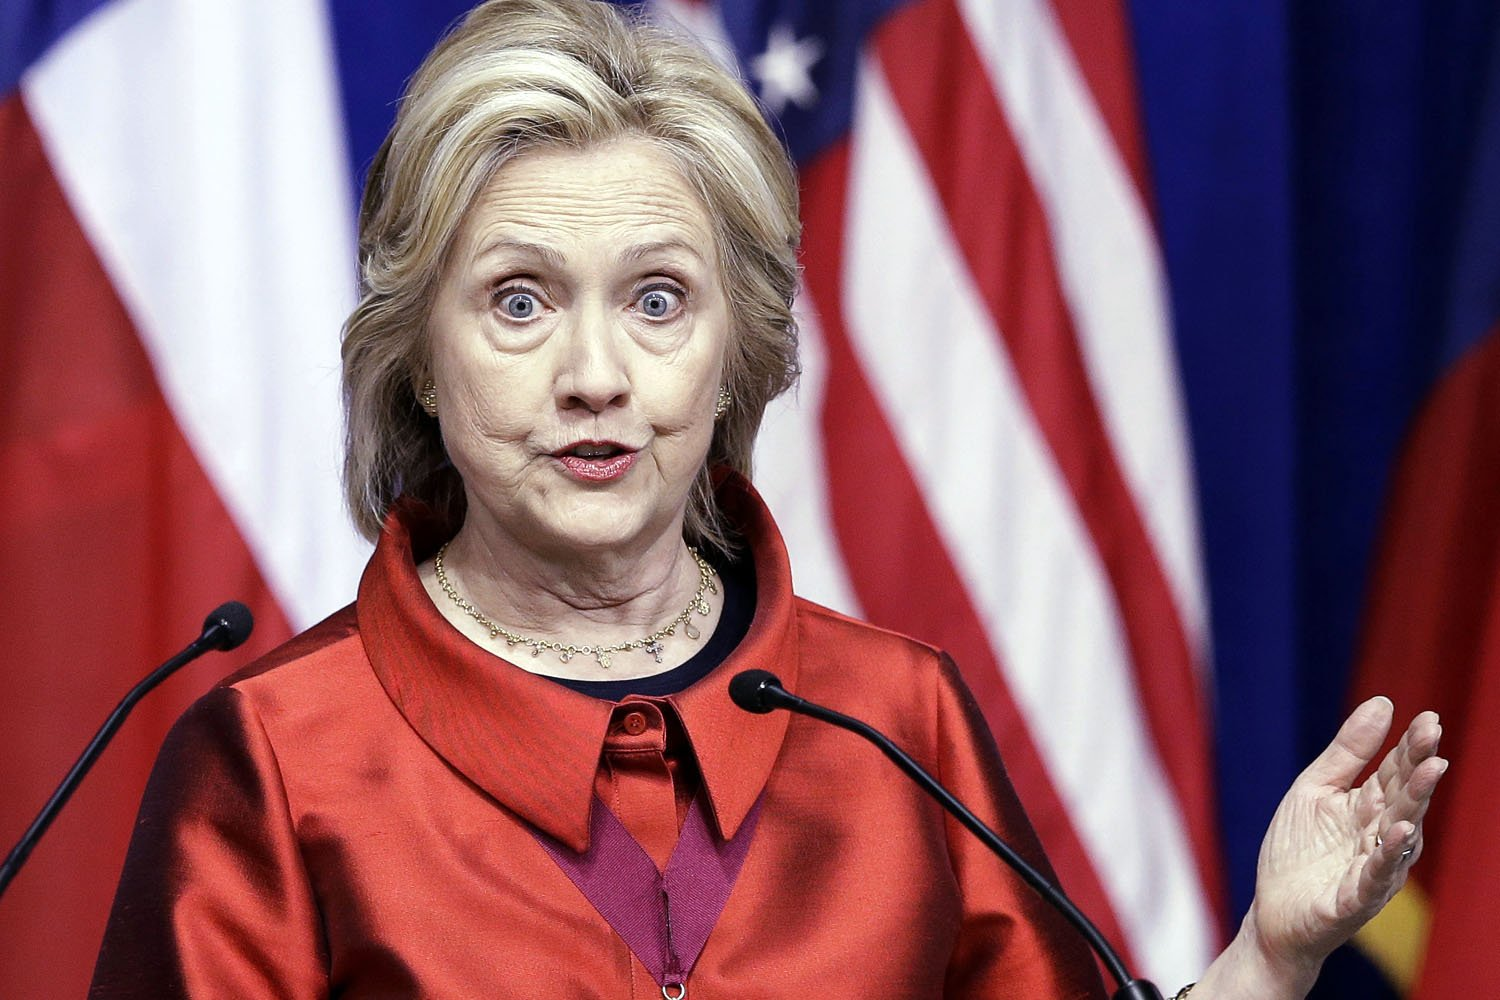 Hillary Clinton in red attire gives speech with serious facial expression